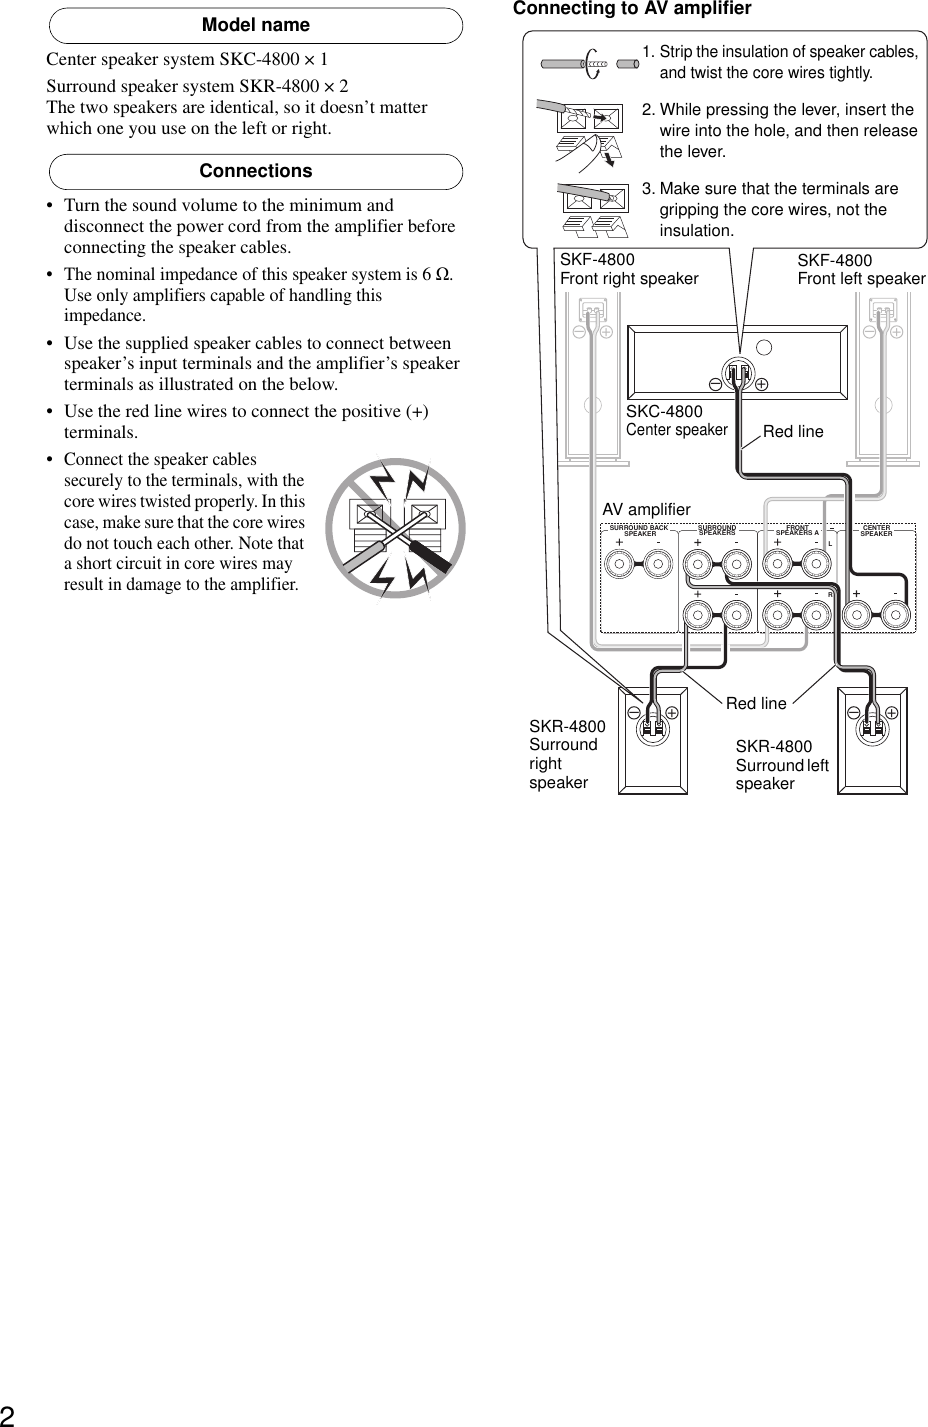 Onkyo Sks 4800 User Manual To The 953de8aa 4487 46a7 8eb7 313659596c2d Wiring Two Speakers In Series Parallel Page 2 Of 4